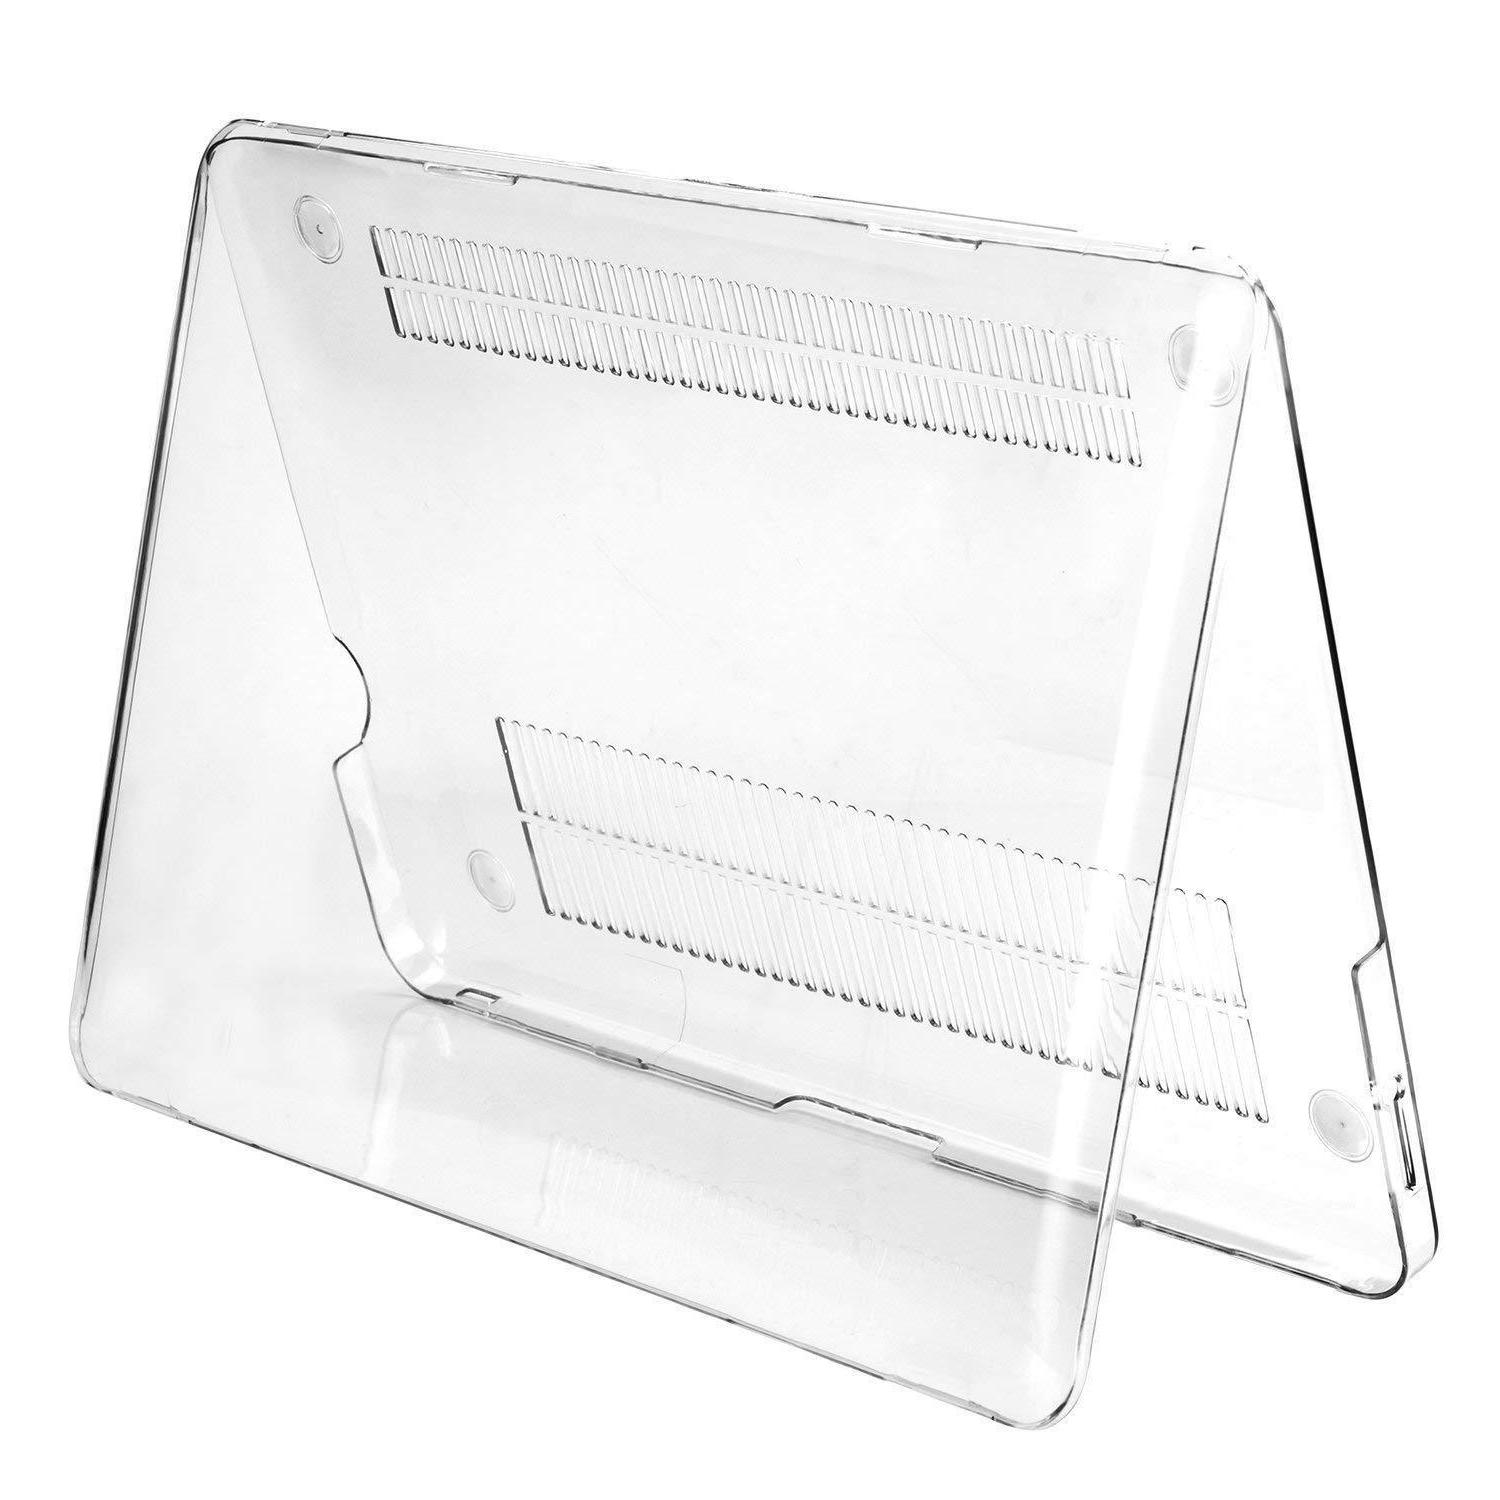 Mosiso Clear Cover for Macbook version keyboard